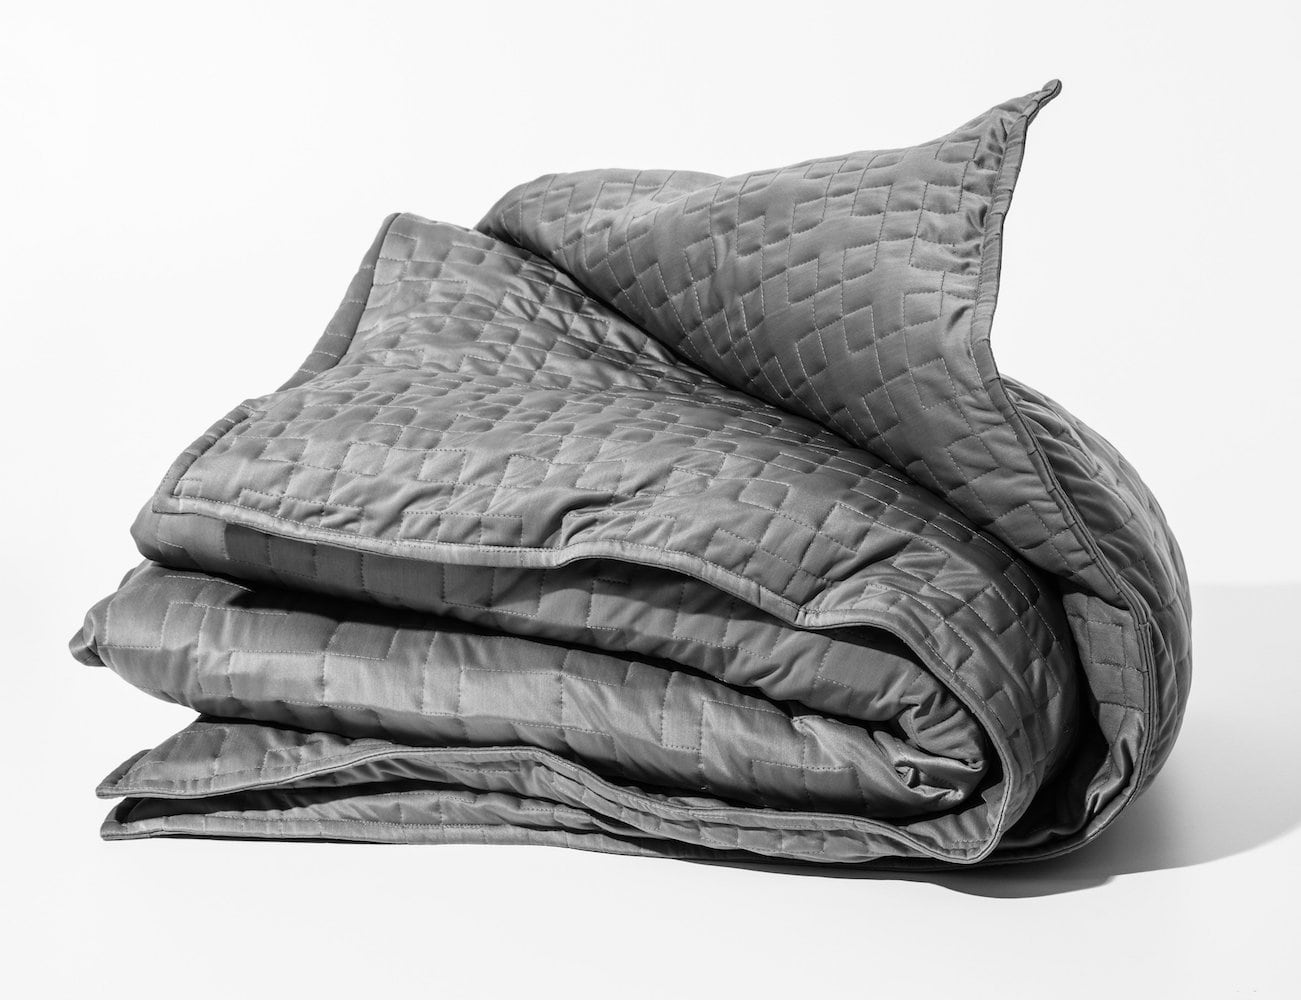 This Weighted Cooling Blanket Helps You Sleep In Hot Weather